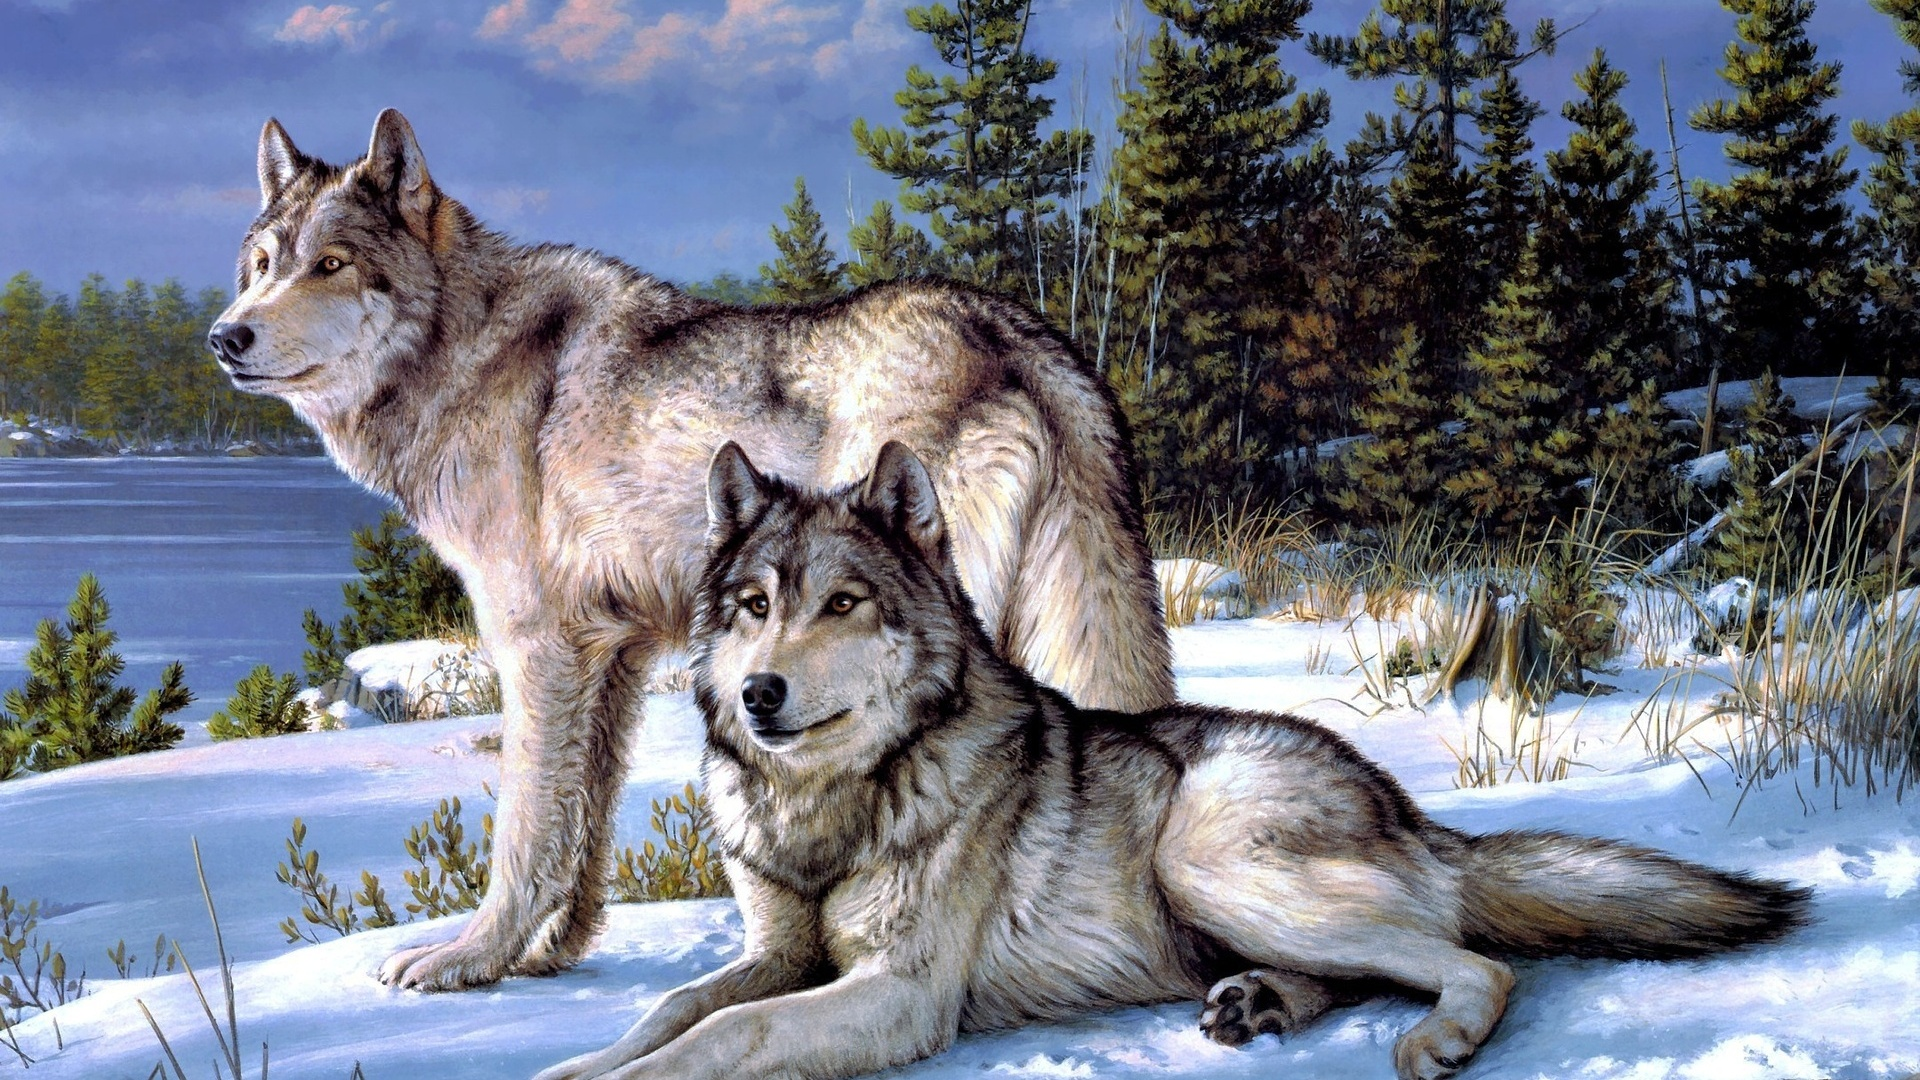 Most Inspiring Wallpaper Mac Wolf - forest-dainty-wolves-winter_wallpapers_52357_1920x1080  Gallery_279512.jpg